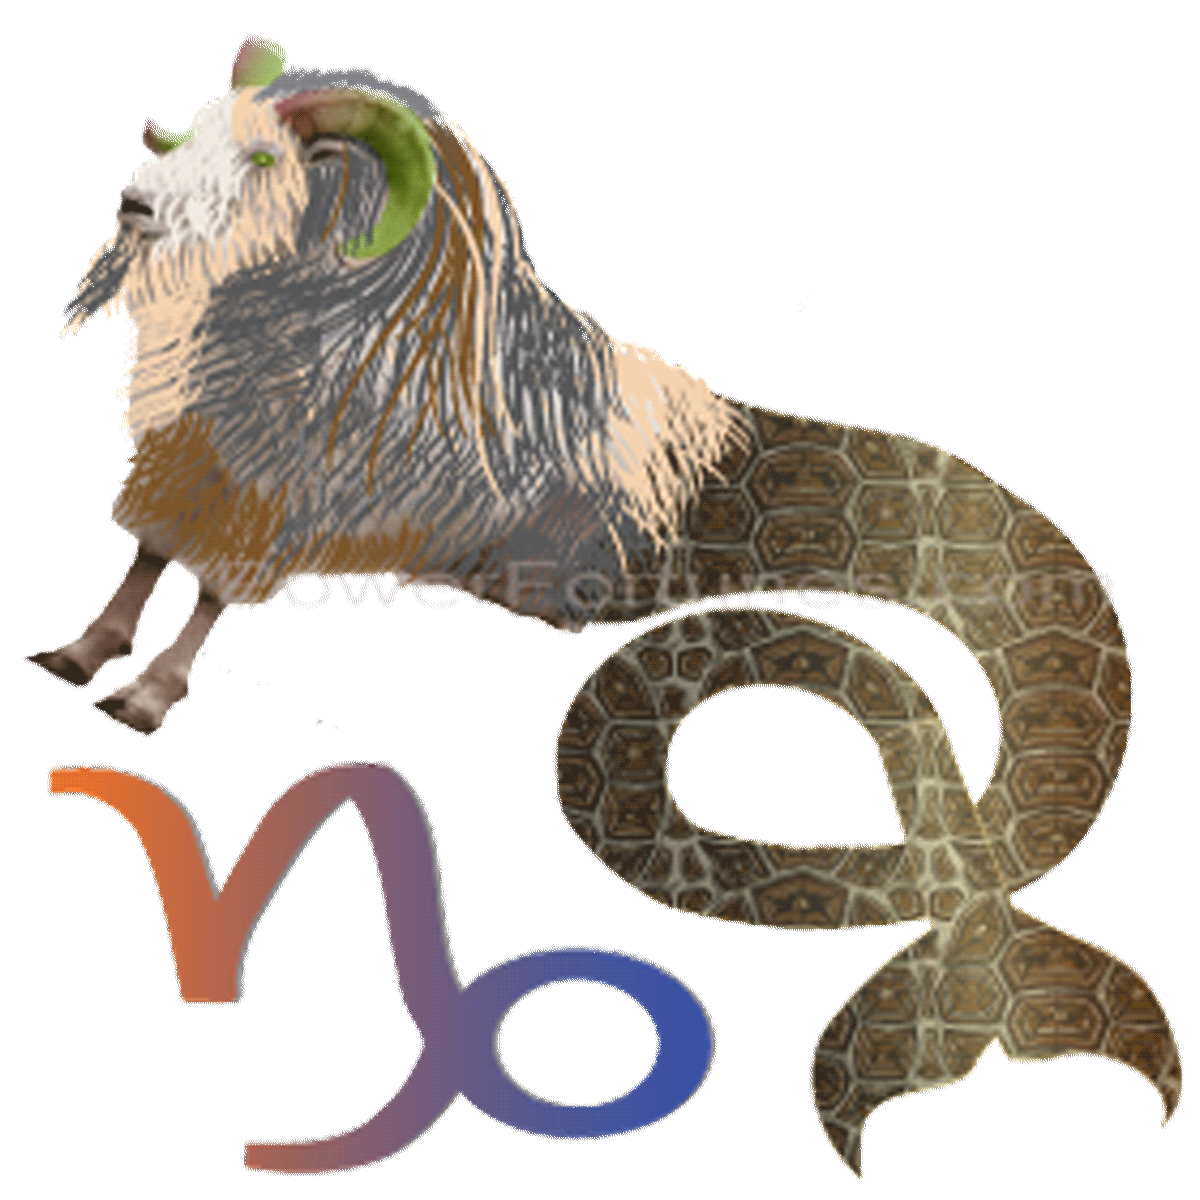 Monthly horoscopes for Capricorn, from 1st March to 31st March